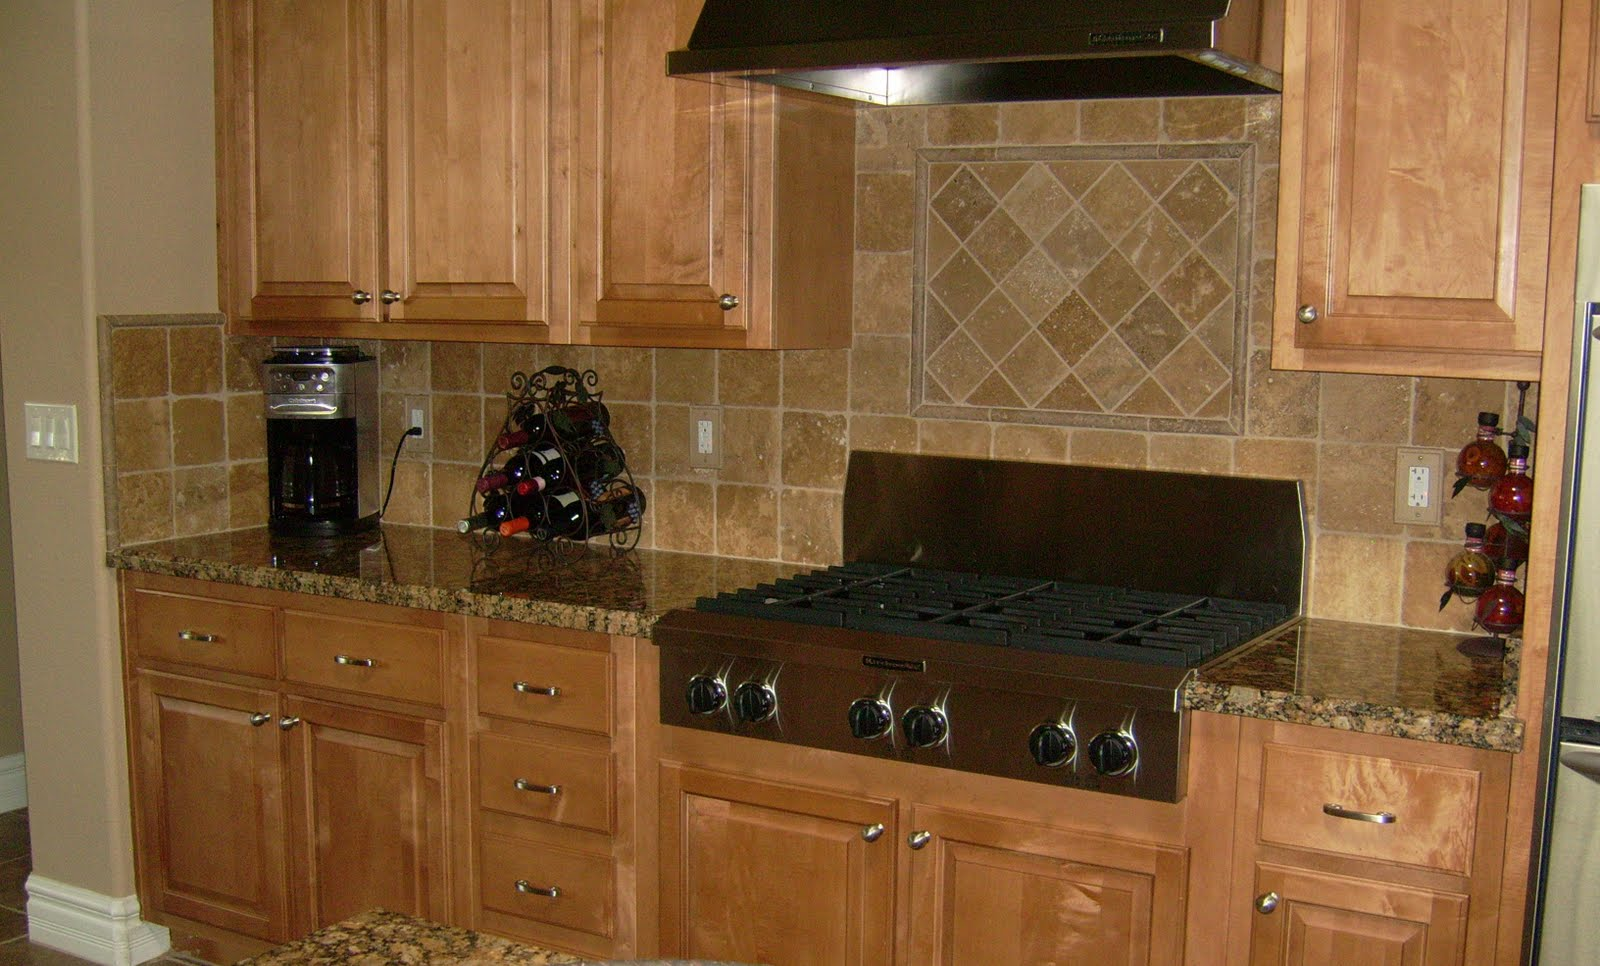 kitchen remodel ideas for small kitchens on Pictures Kitchen Backsplash Ideas 6x6 Tumbled Stone Kitchen Backsplash ...